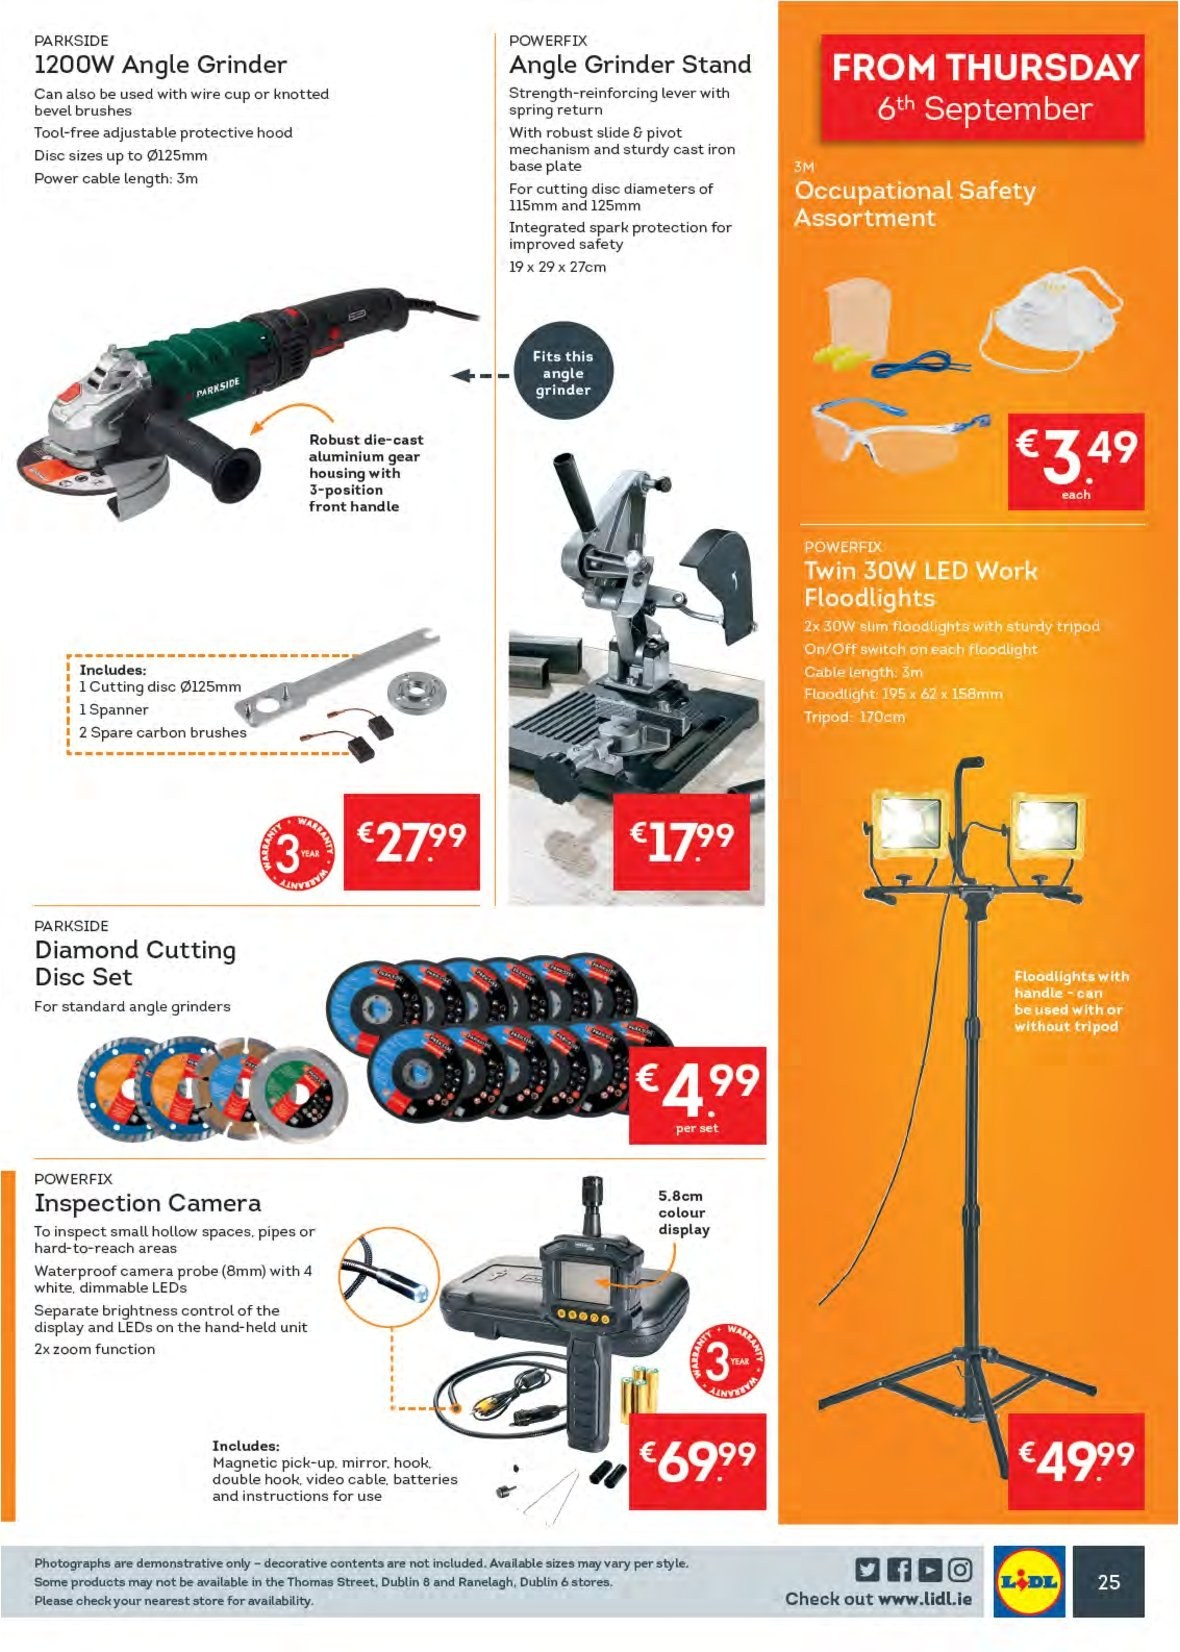 Lidl offer  - 3.9.2018 - 9.9.2018 - Sales products - hook, plate, grinder, cup, battery, camera, floodlight, switch, angle grinder, Parkside, spanner, double hook. Page 29.